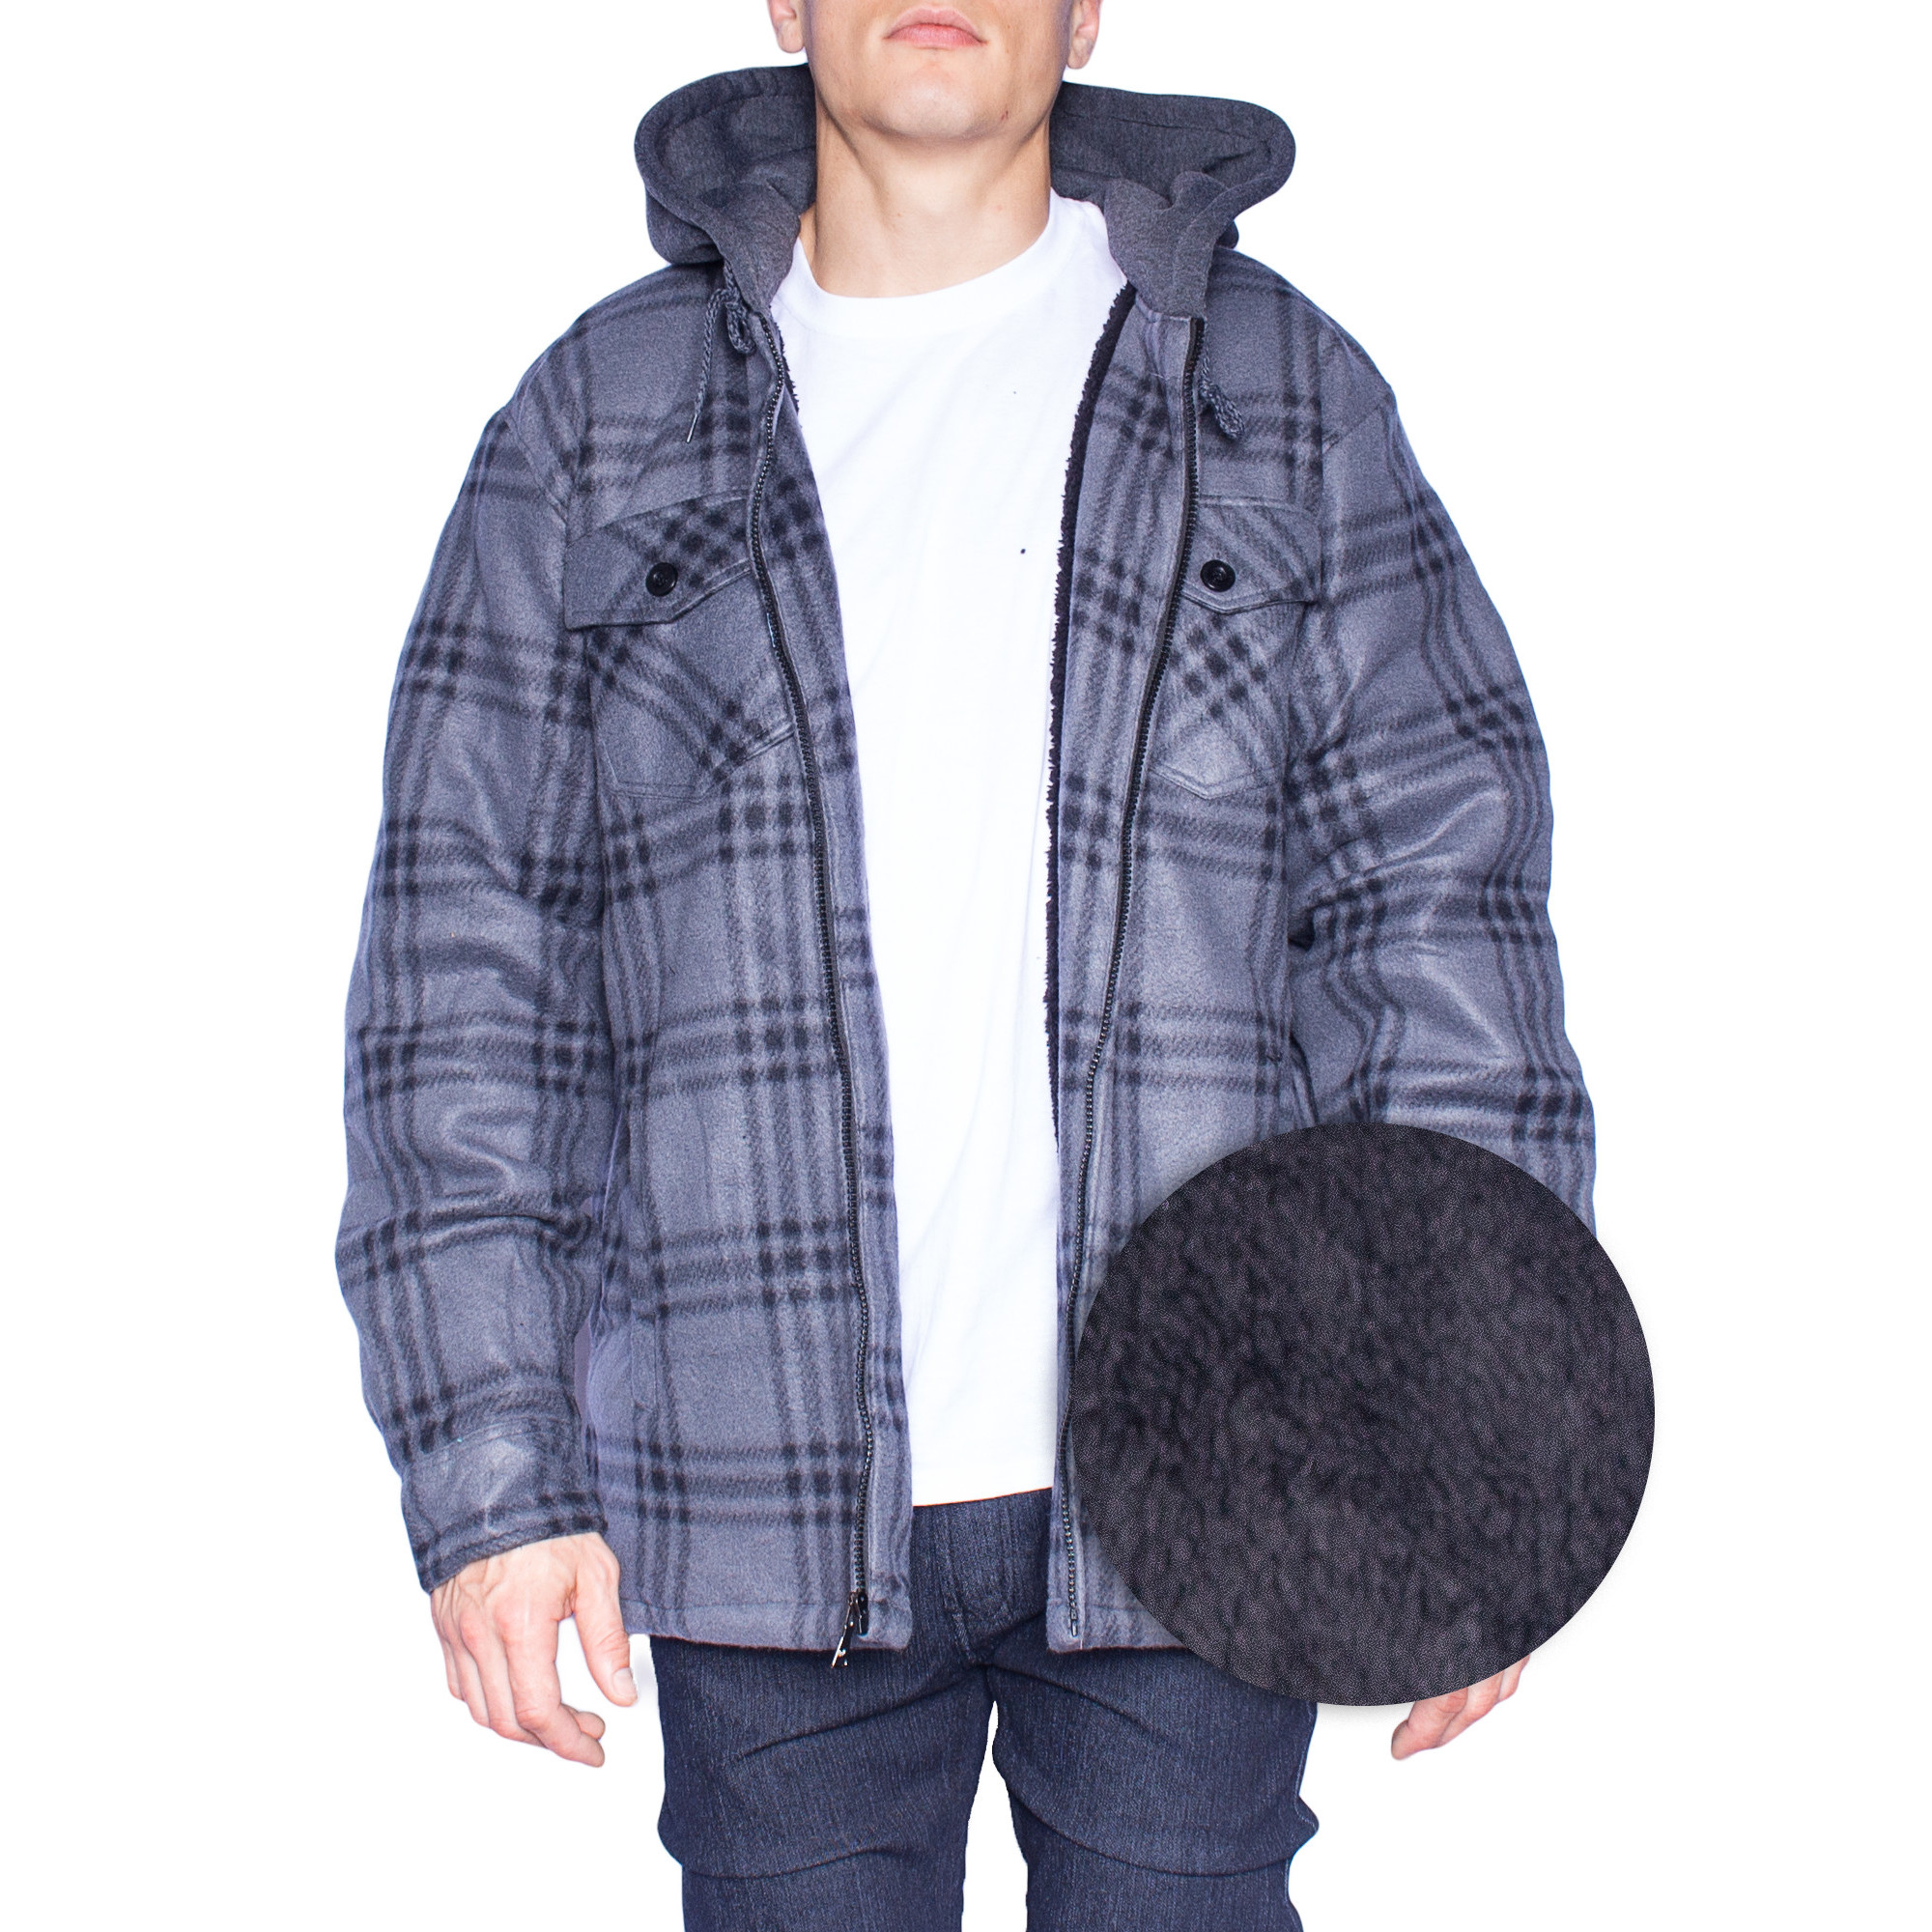 Hoodie Flannel Fleece Jacket For Men Zip Up Big & Tall Lined Sherpa Sweat Shirts (XX-Large,Grey/Black)